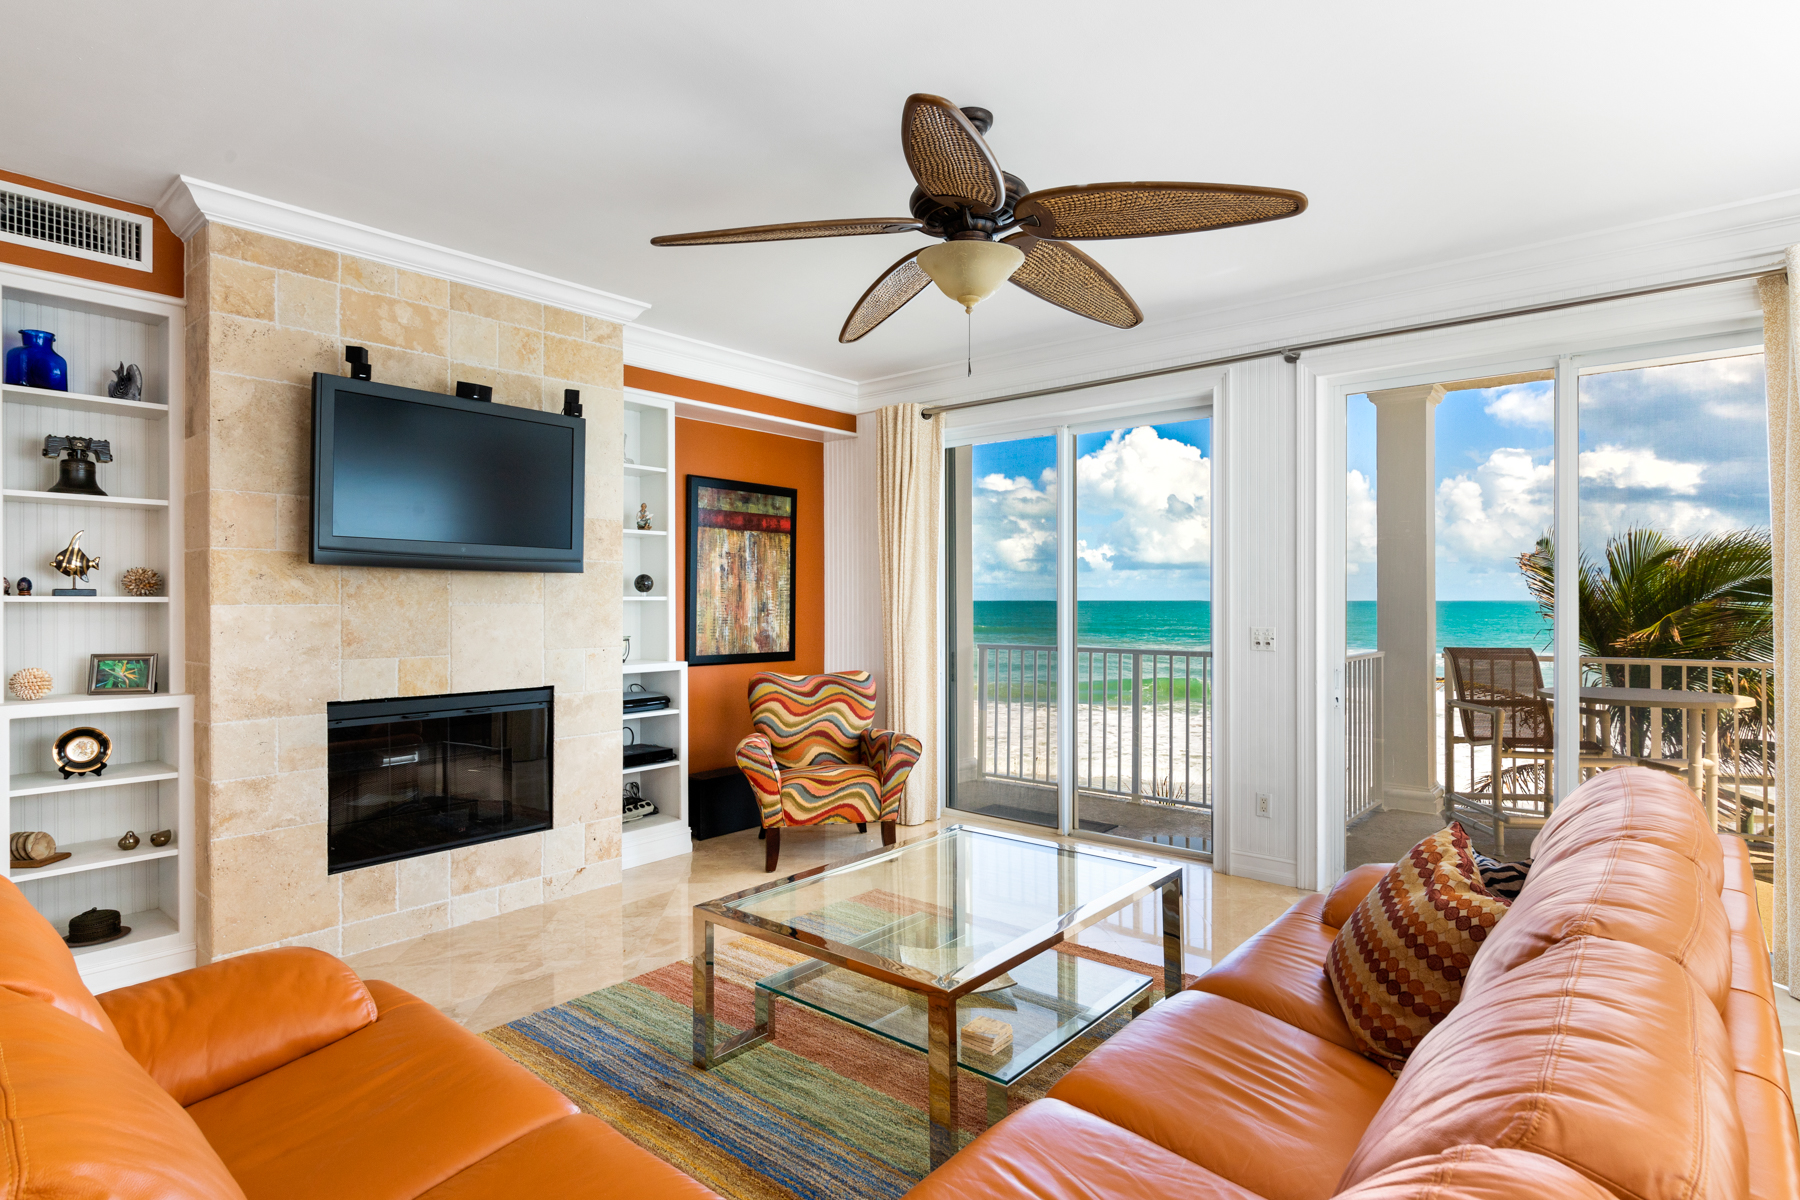 Additional photo for property listing at Beautifully Appointed, Turn key, End Unit Condo in Exclusive Saltaire 3135 S Highway A1A Unit 203 Melbourne Beach, Florida 32951 United States